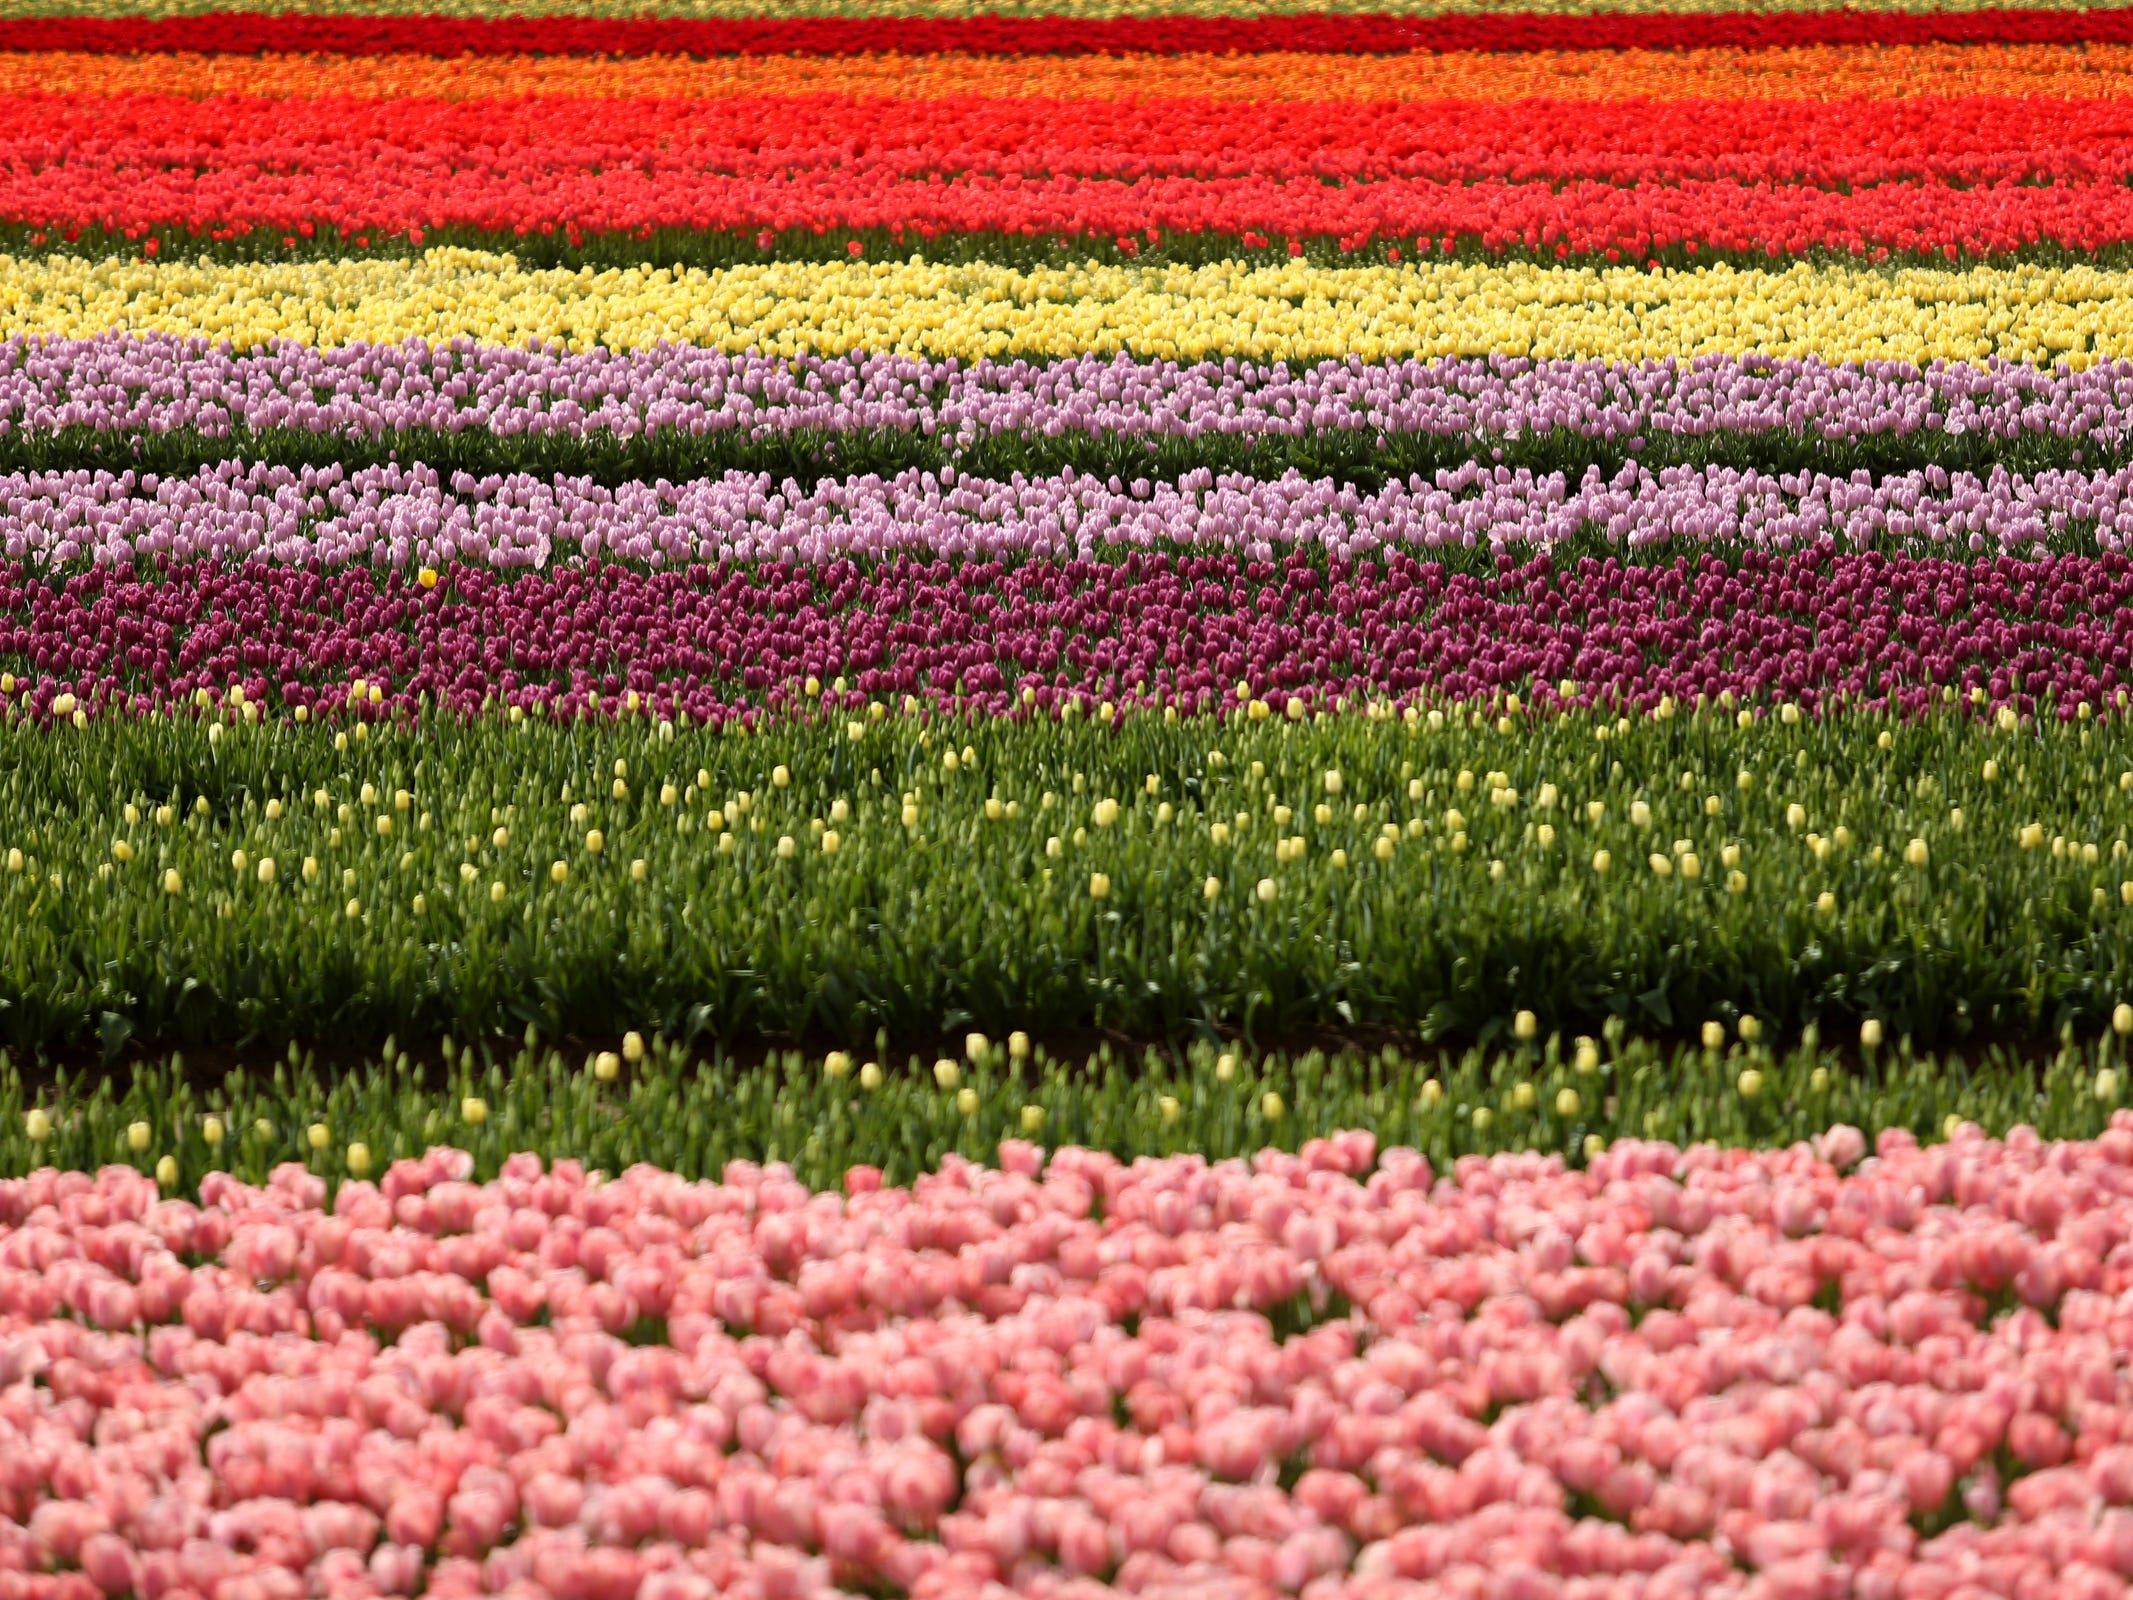 Acres of flowers bloom during the Wooden Shoe Tulip Fest near Woodburn on April 17, 2019.